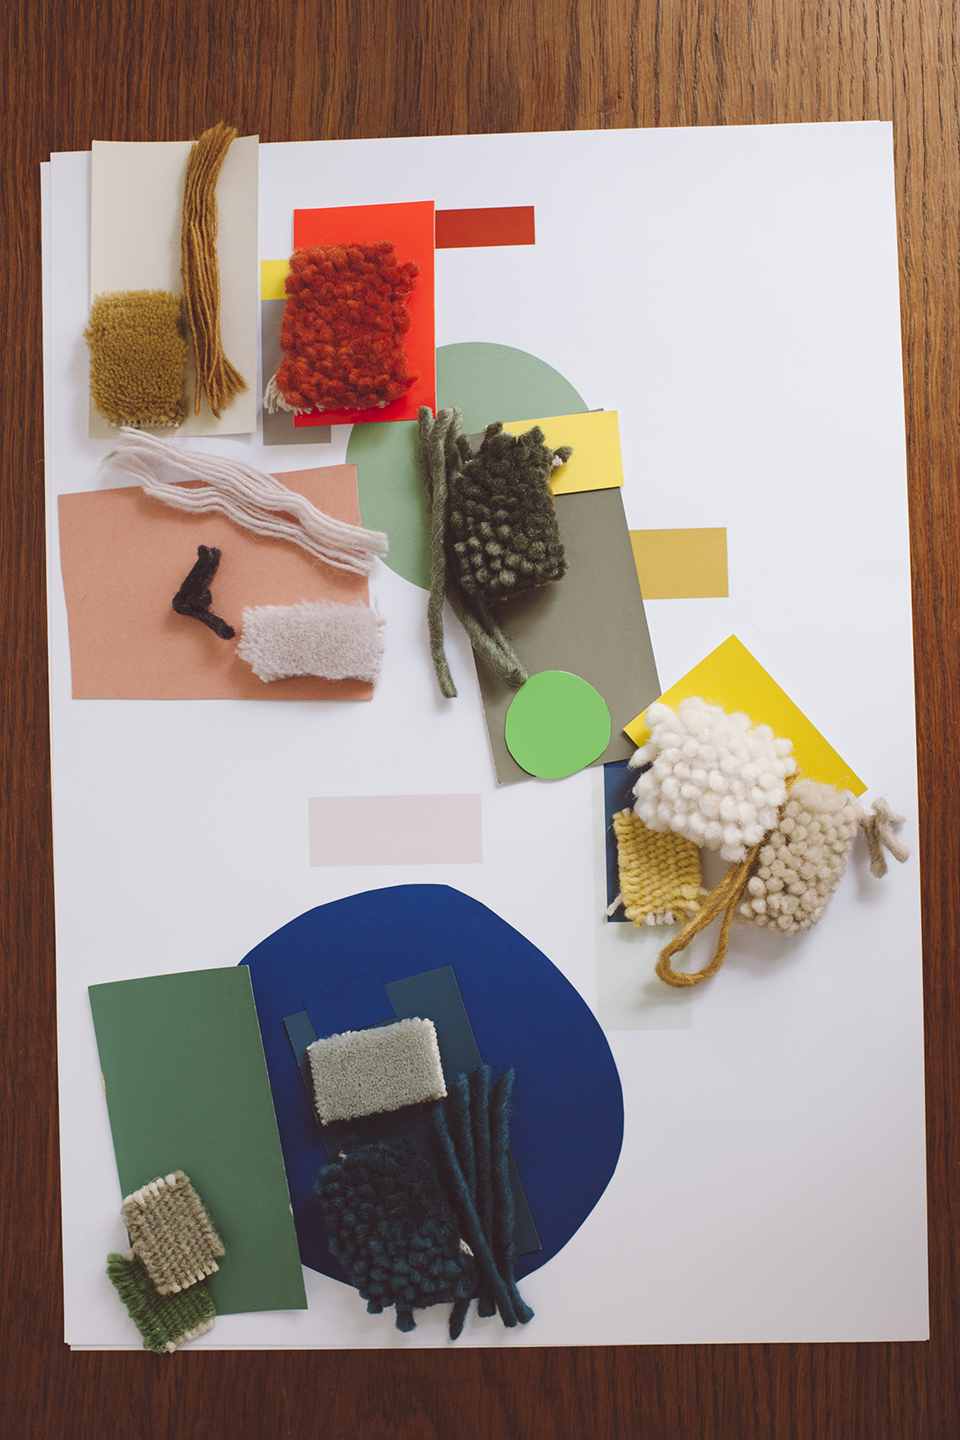 At Studio Greiling: colour and texture mood board.